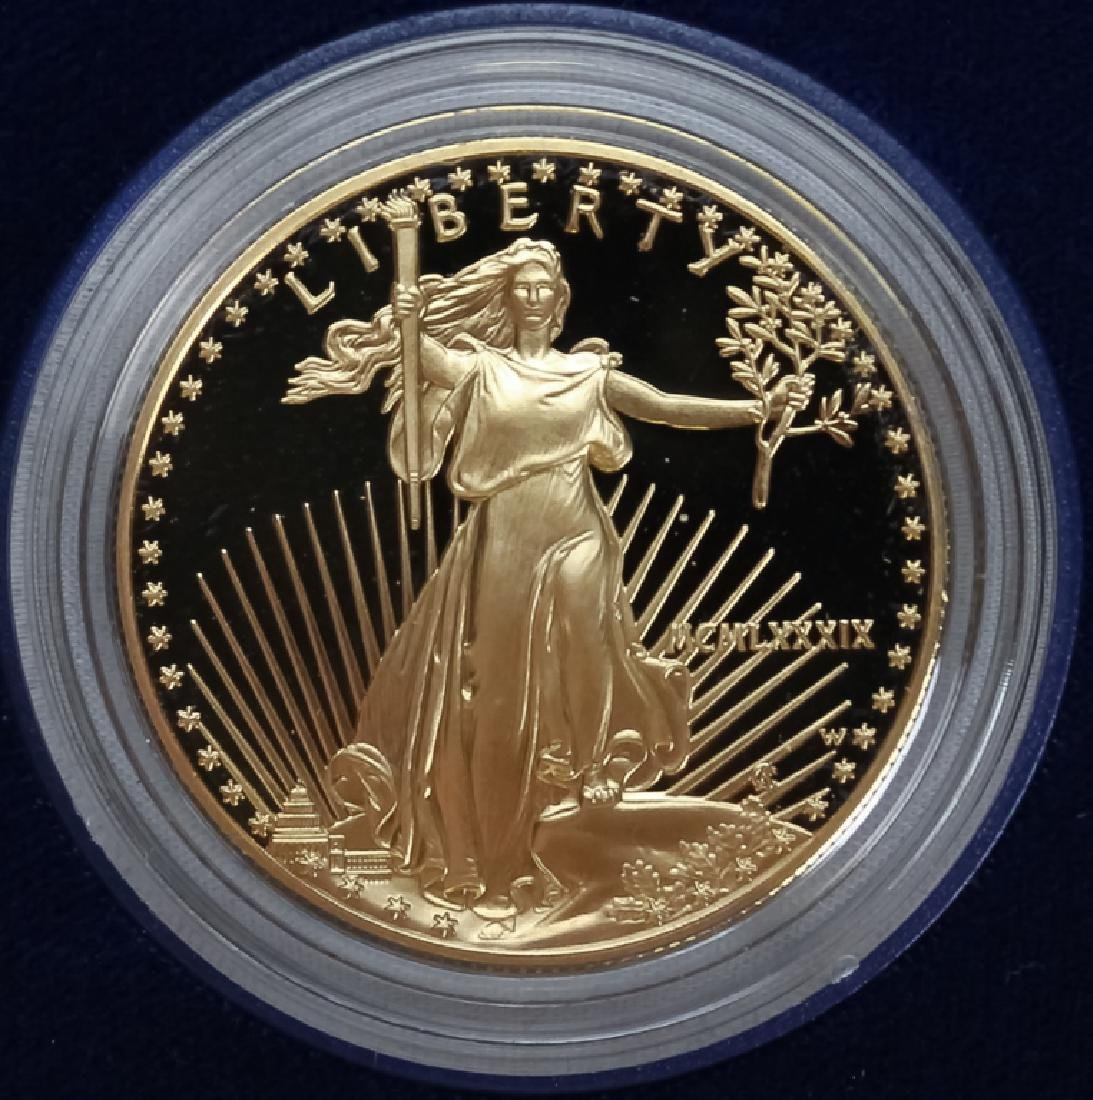 1989 1oz $50 Proof Gold American US Eagle Coin